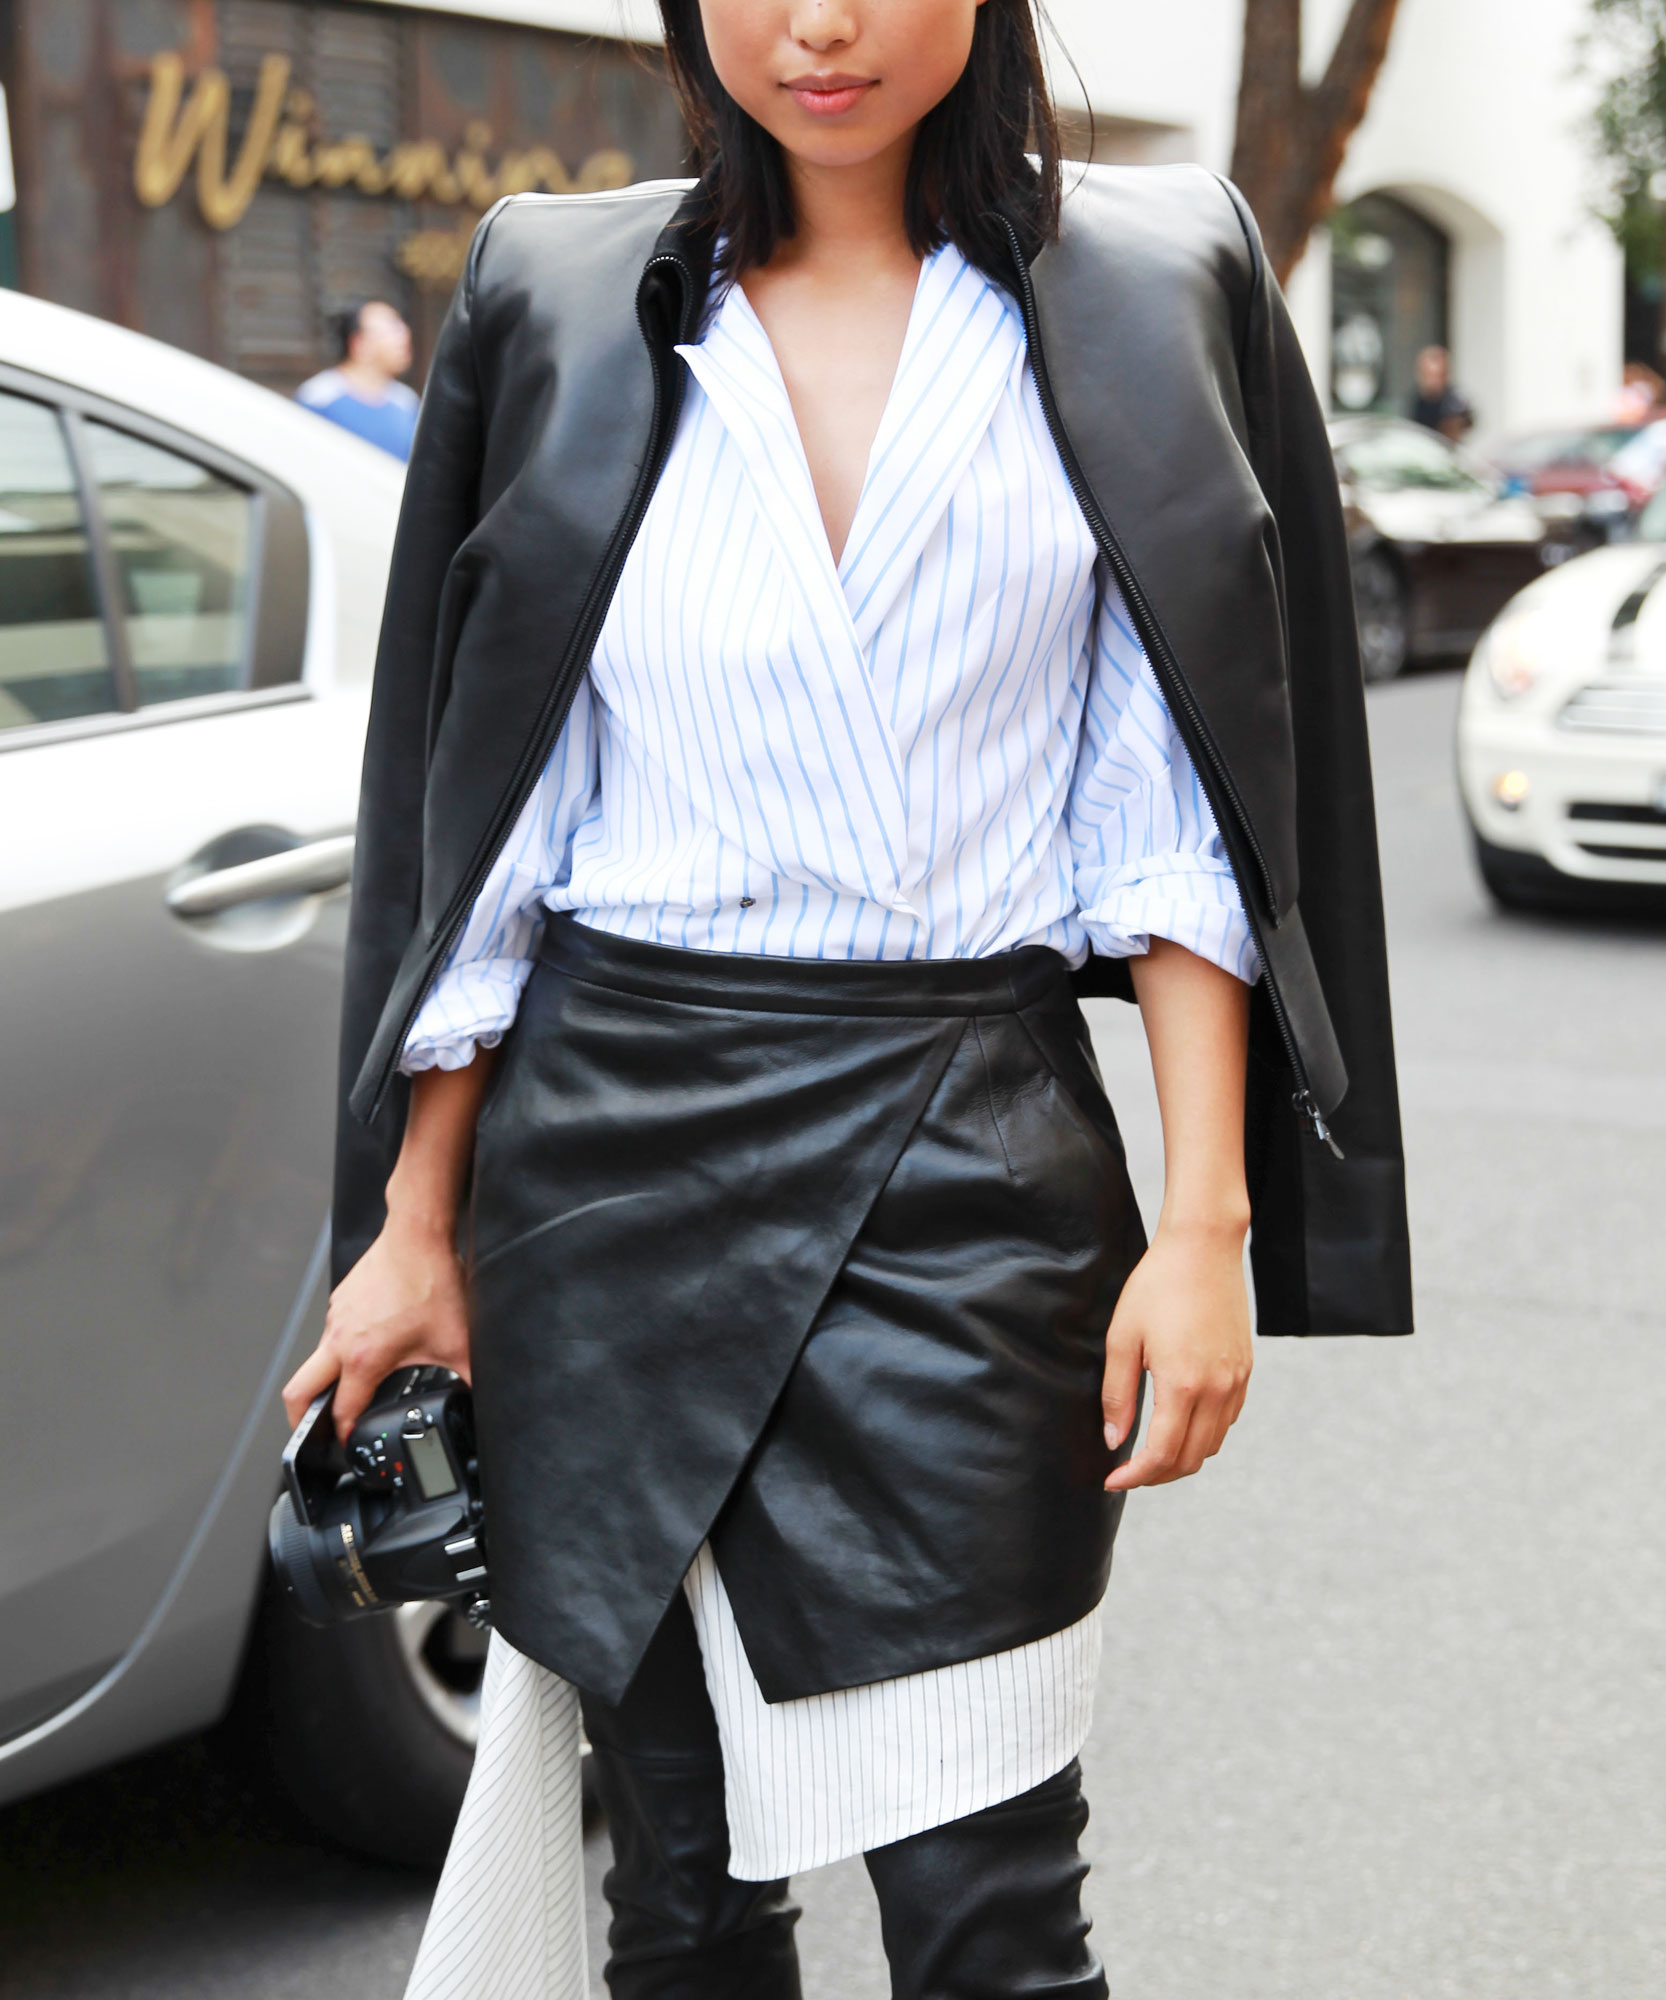 Margaret Zhang wearing Dion Lee jacket and skirt, Michael Lo Sordo shirt and Givenchy boots attends the Dion Lee show during Mercedes-Benz Fashion Week Australia 2014 at 7 Danks Street, Waterloo on April 9, 2014 in Sydney, Australia.